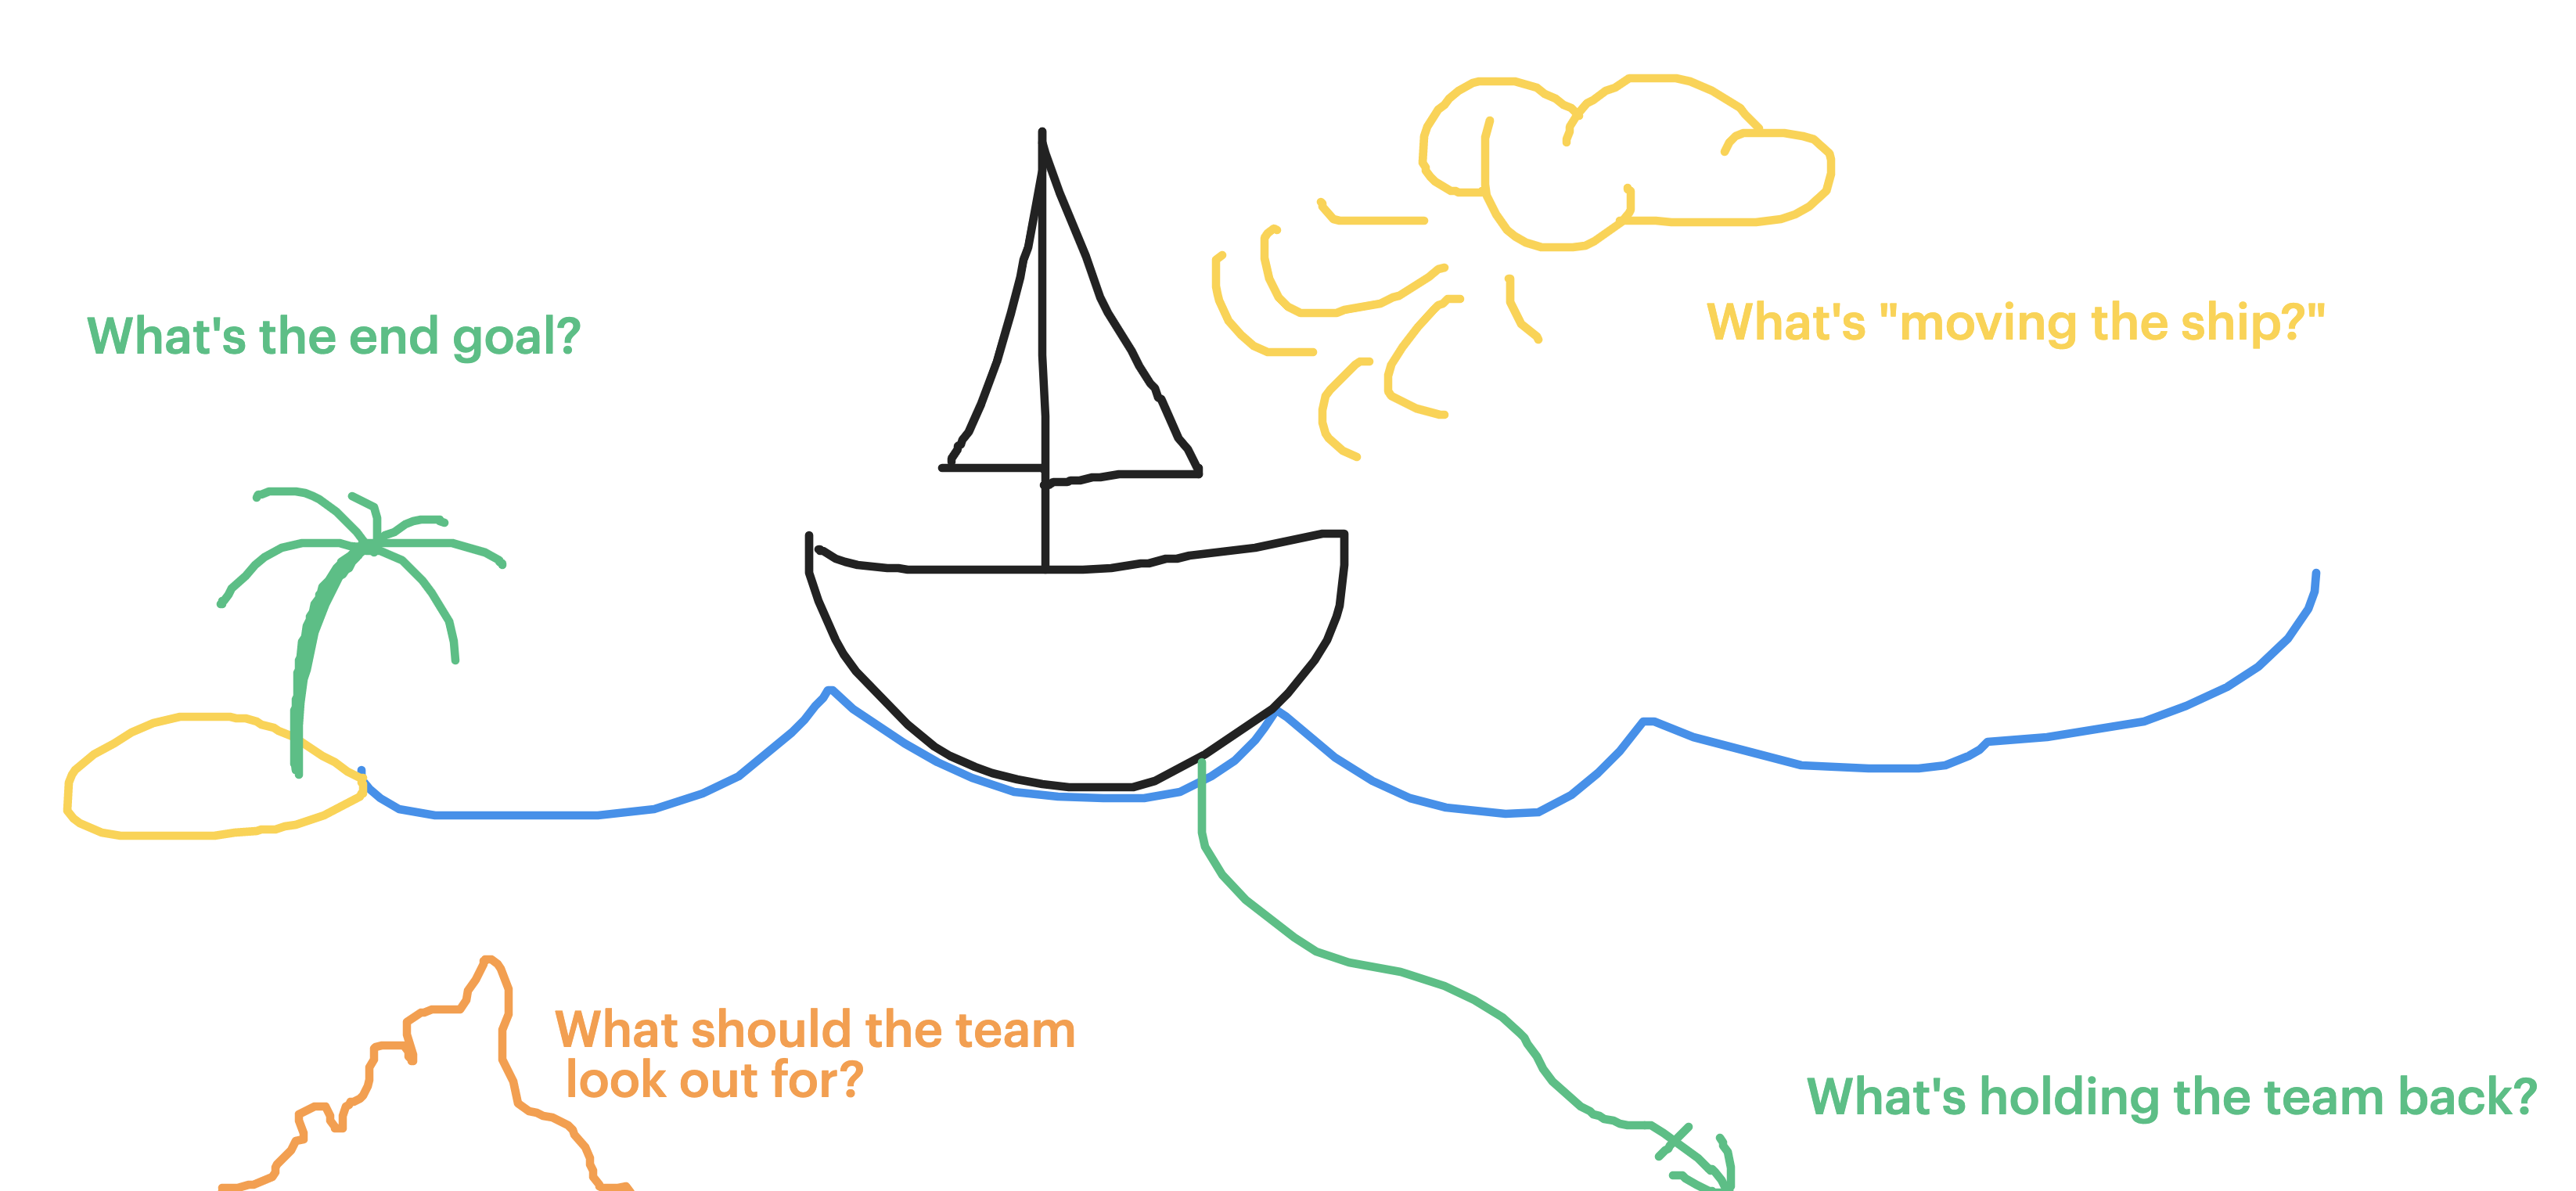 chart showing goals and things holding the team back